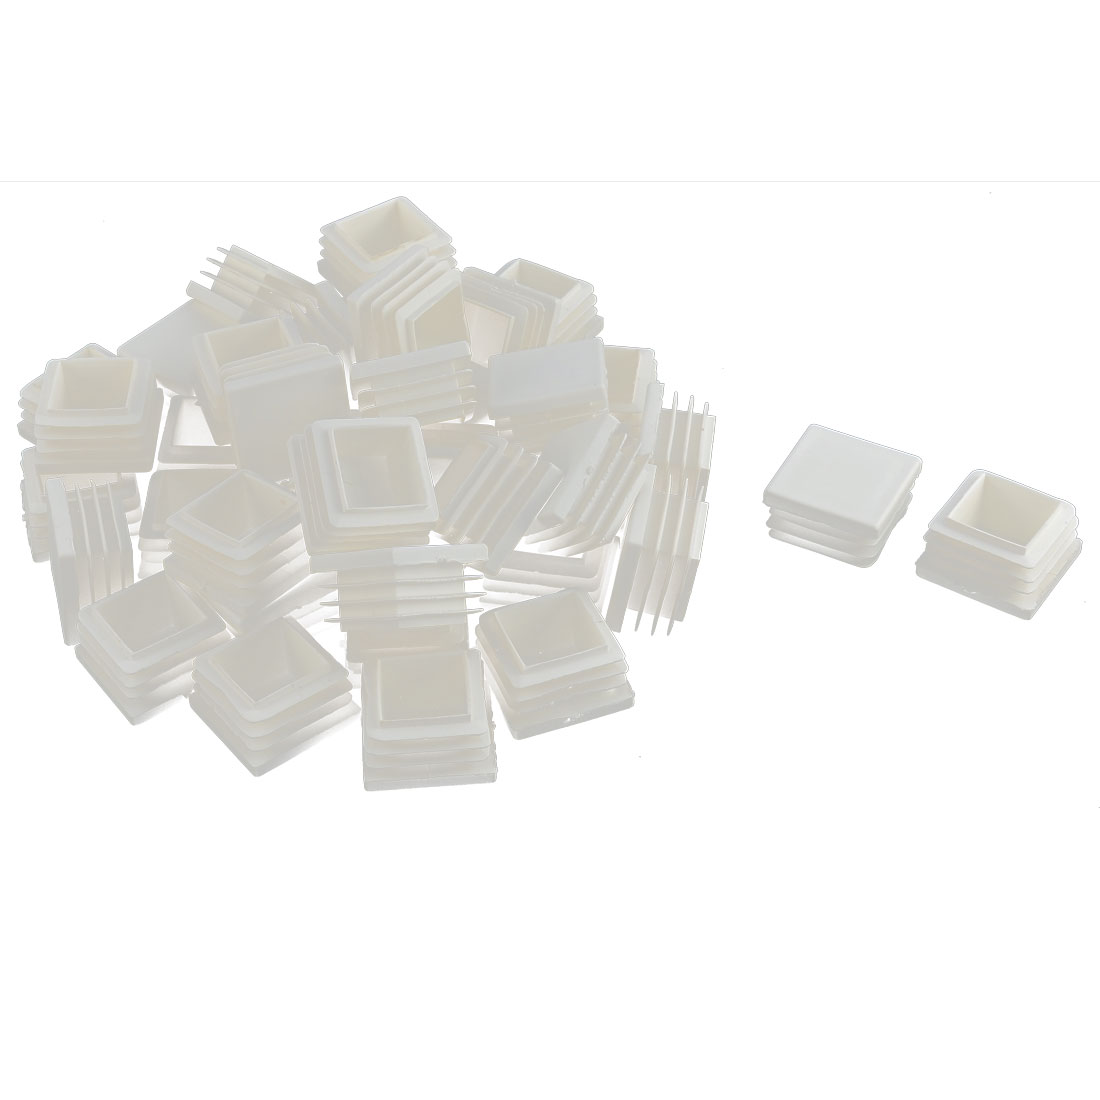 Furniture Table Chair Legs Plastic Square Tube Insert Cap Cover Protector White 30 x 30mm 40pcs